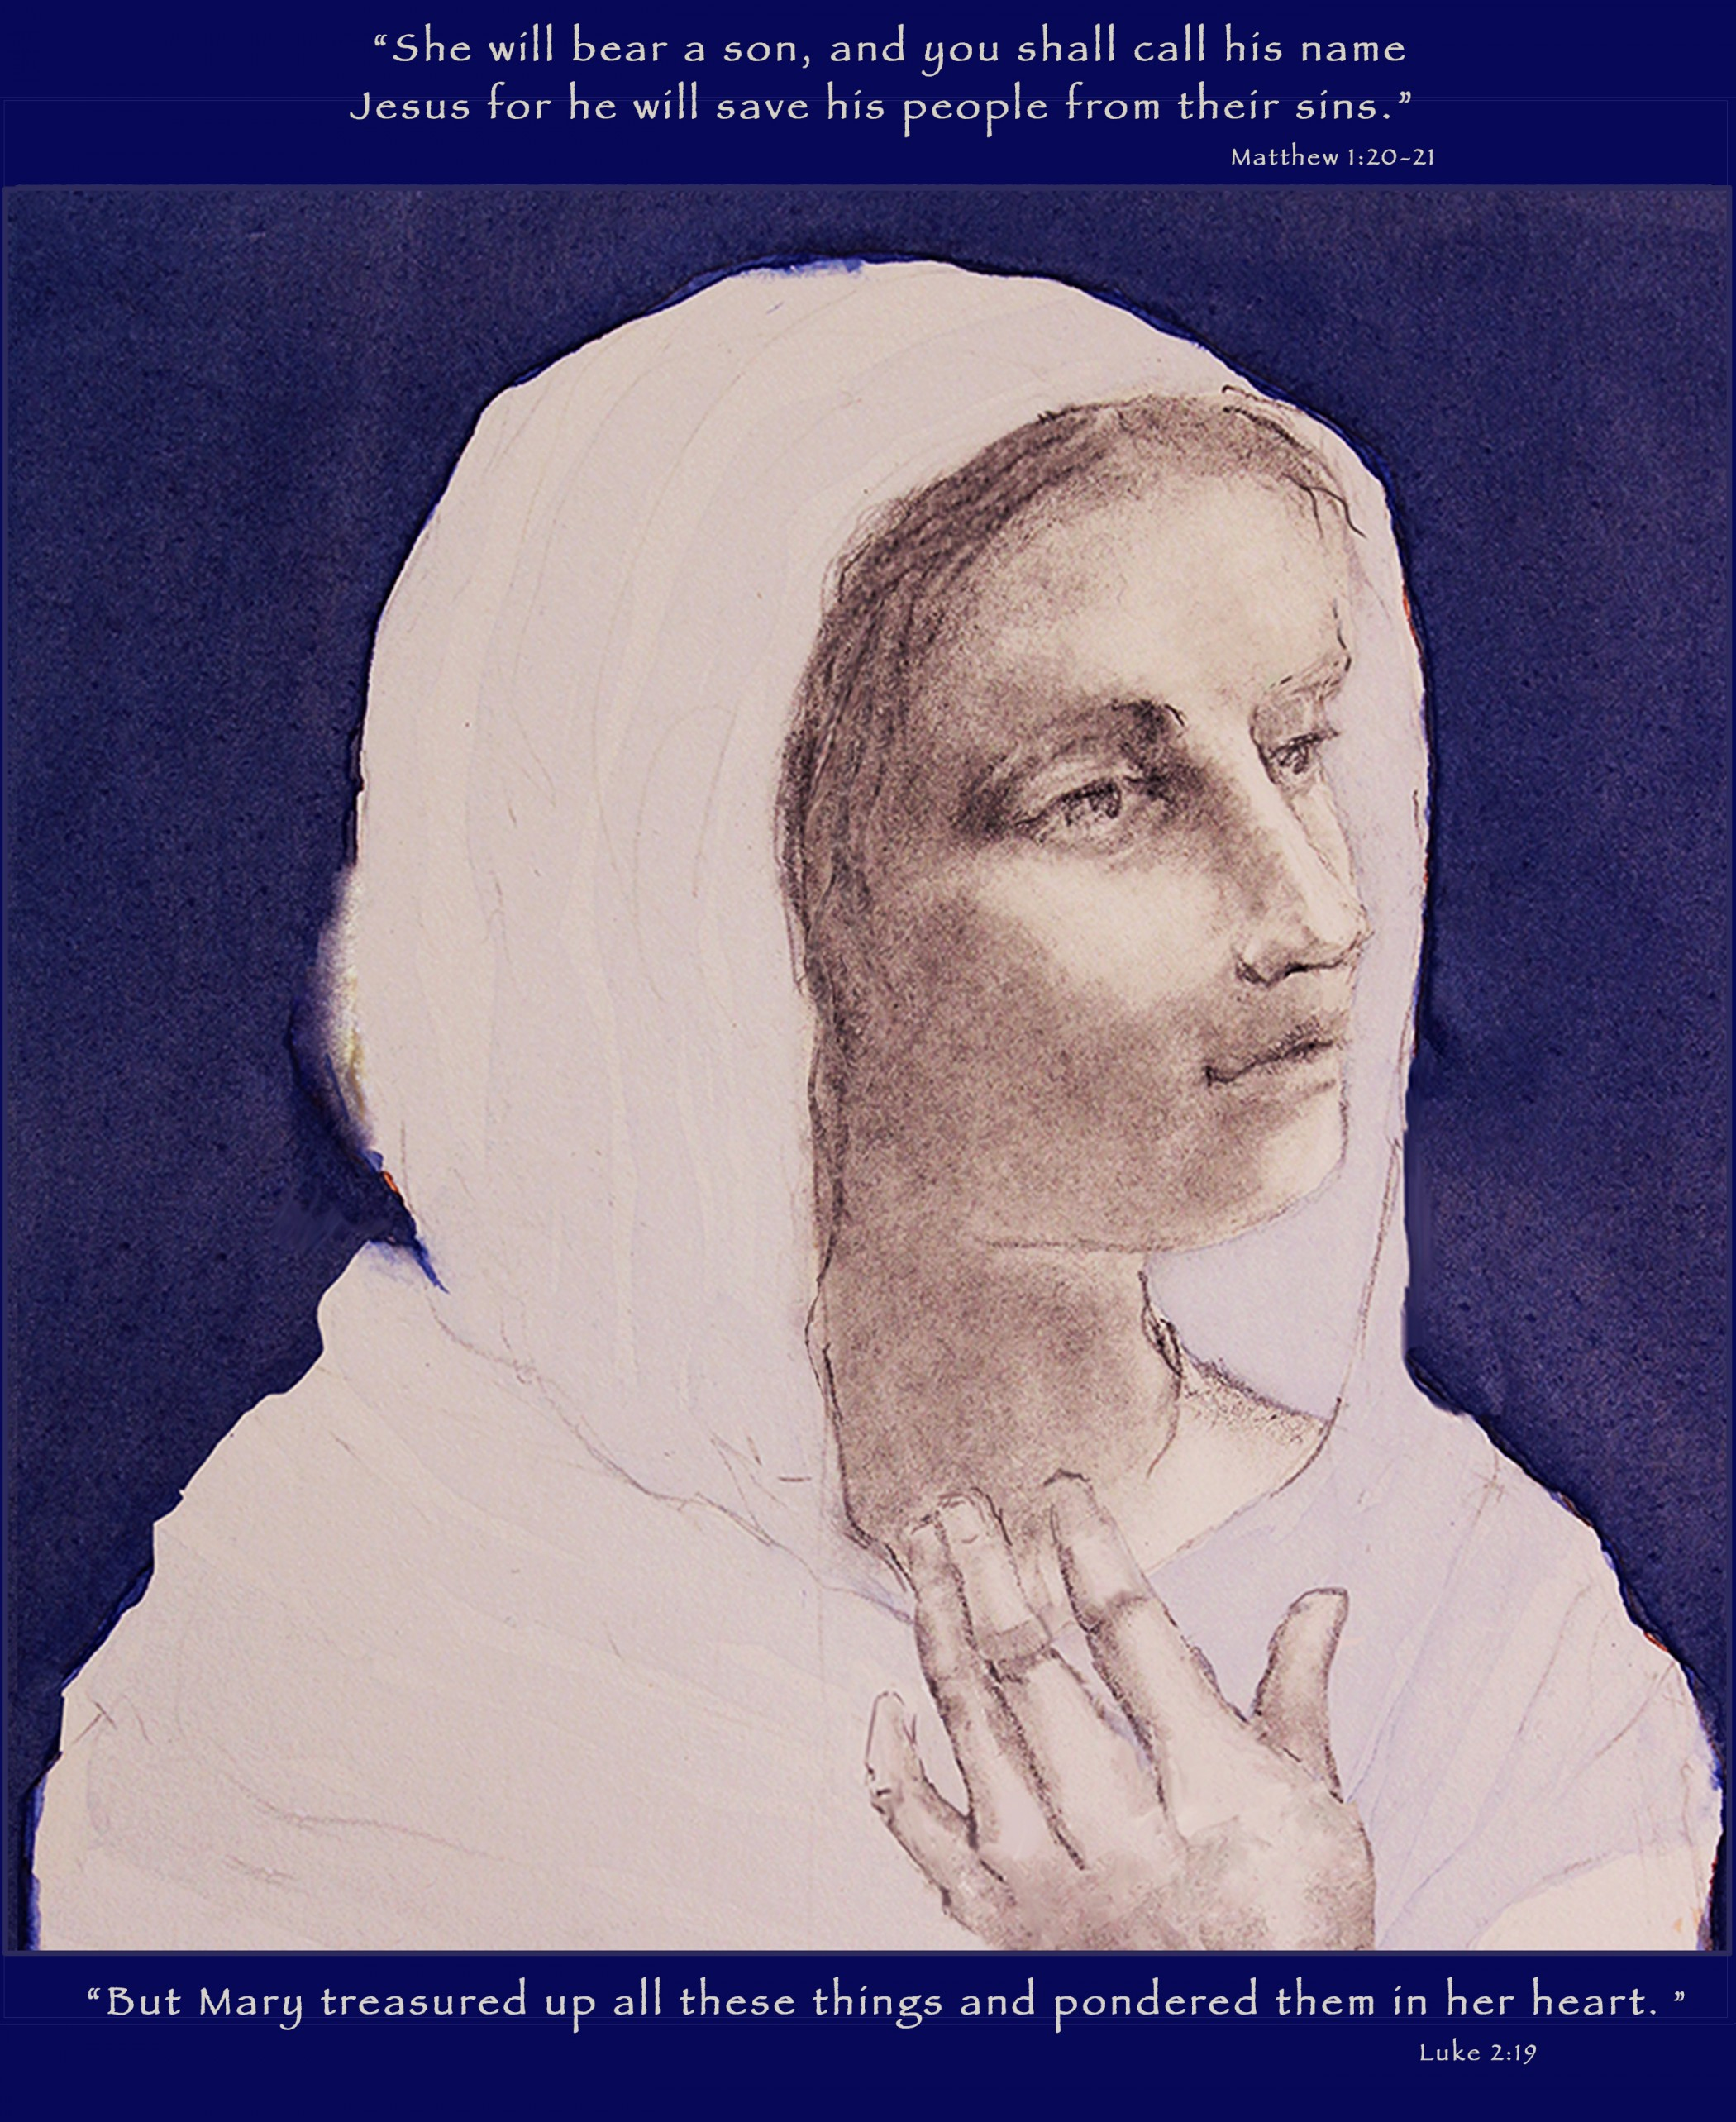 Mary Treasured These Things In Her Heart